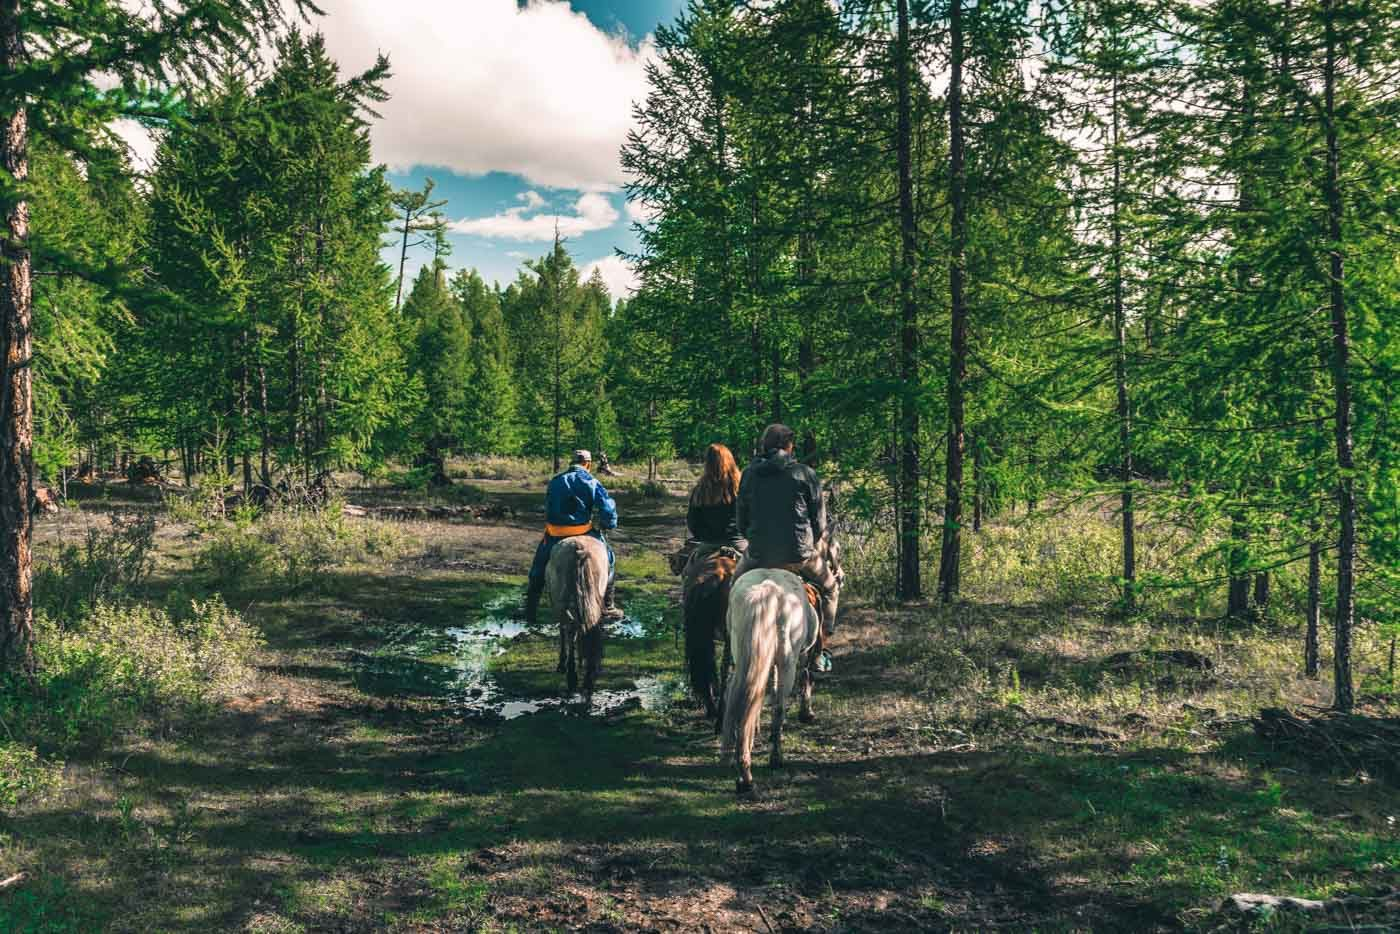 Exploring the forest on a horseback